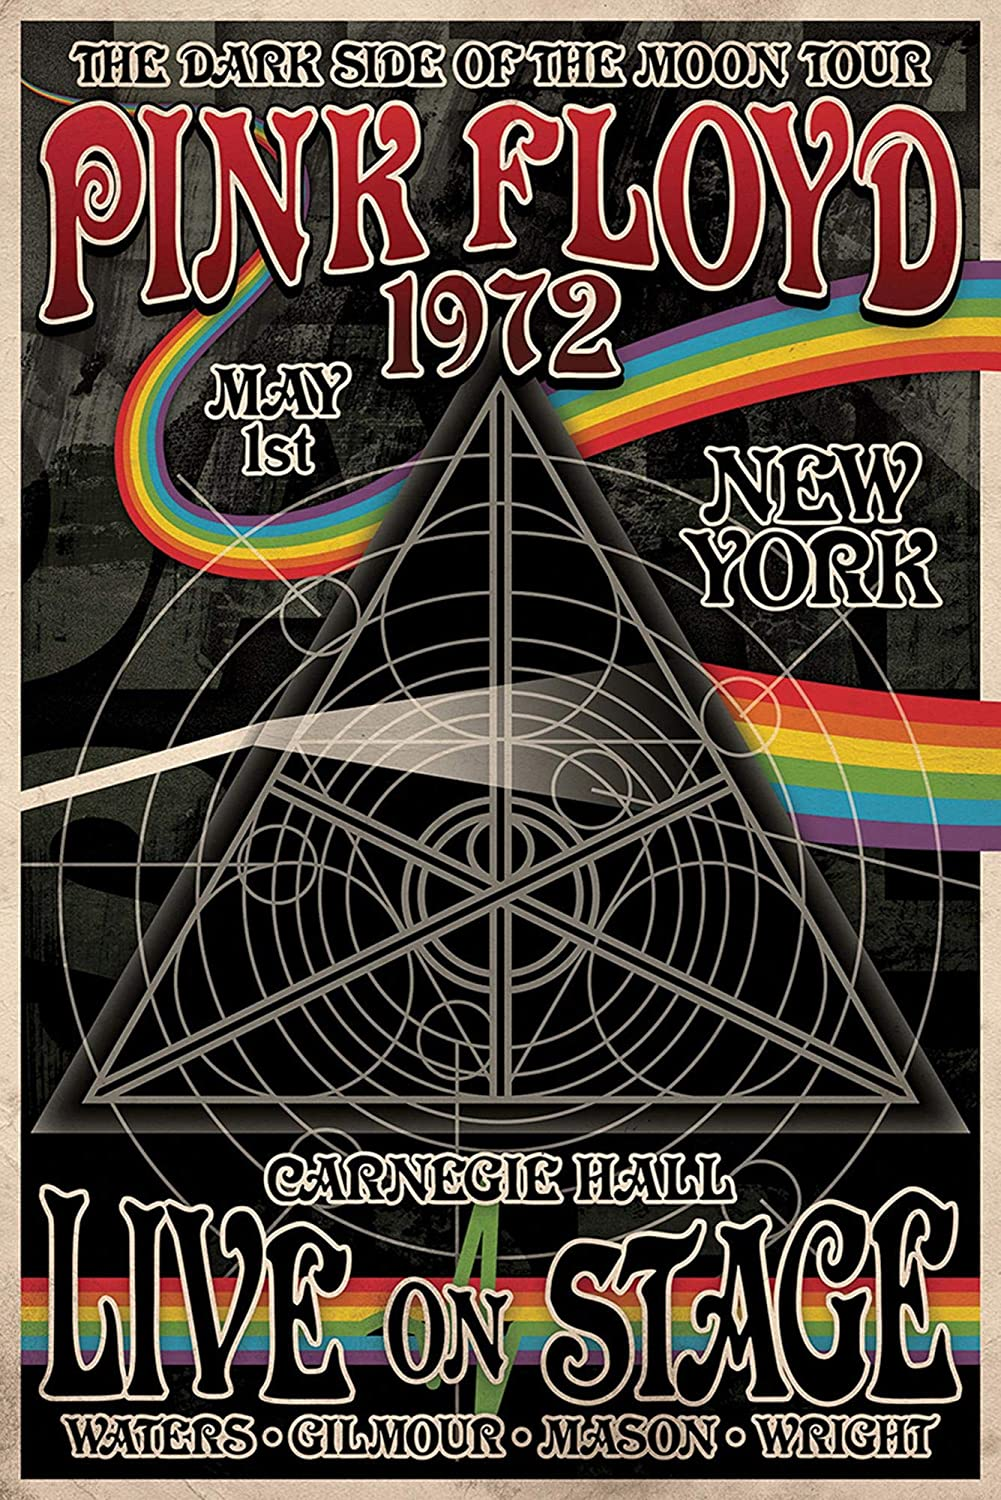 The Dark Side of the Moon tour poster 1972-1973 Artwork//Print. Pink Floyd